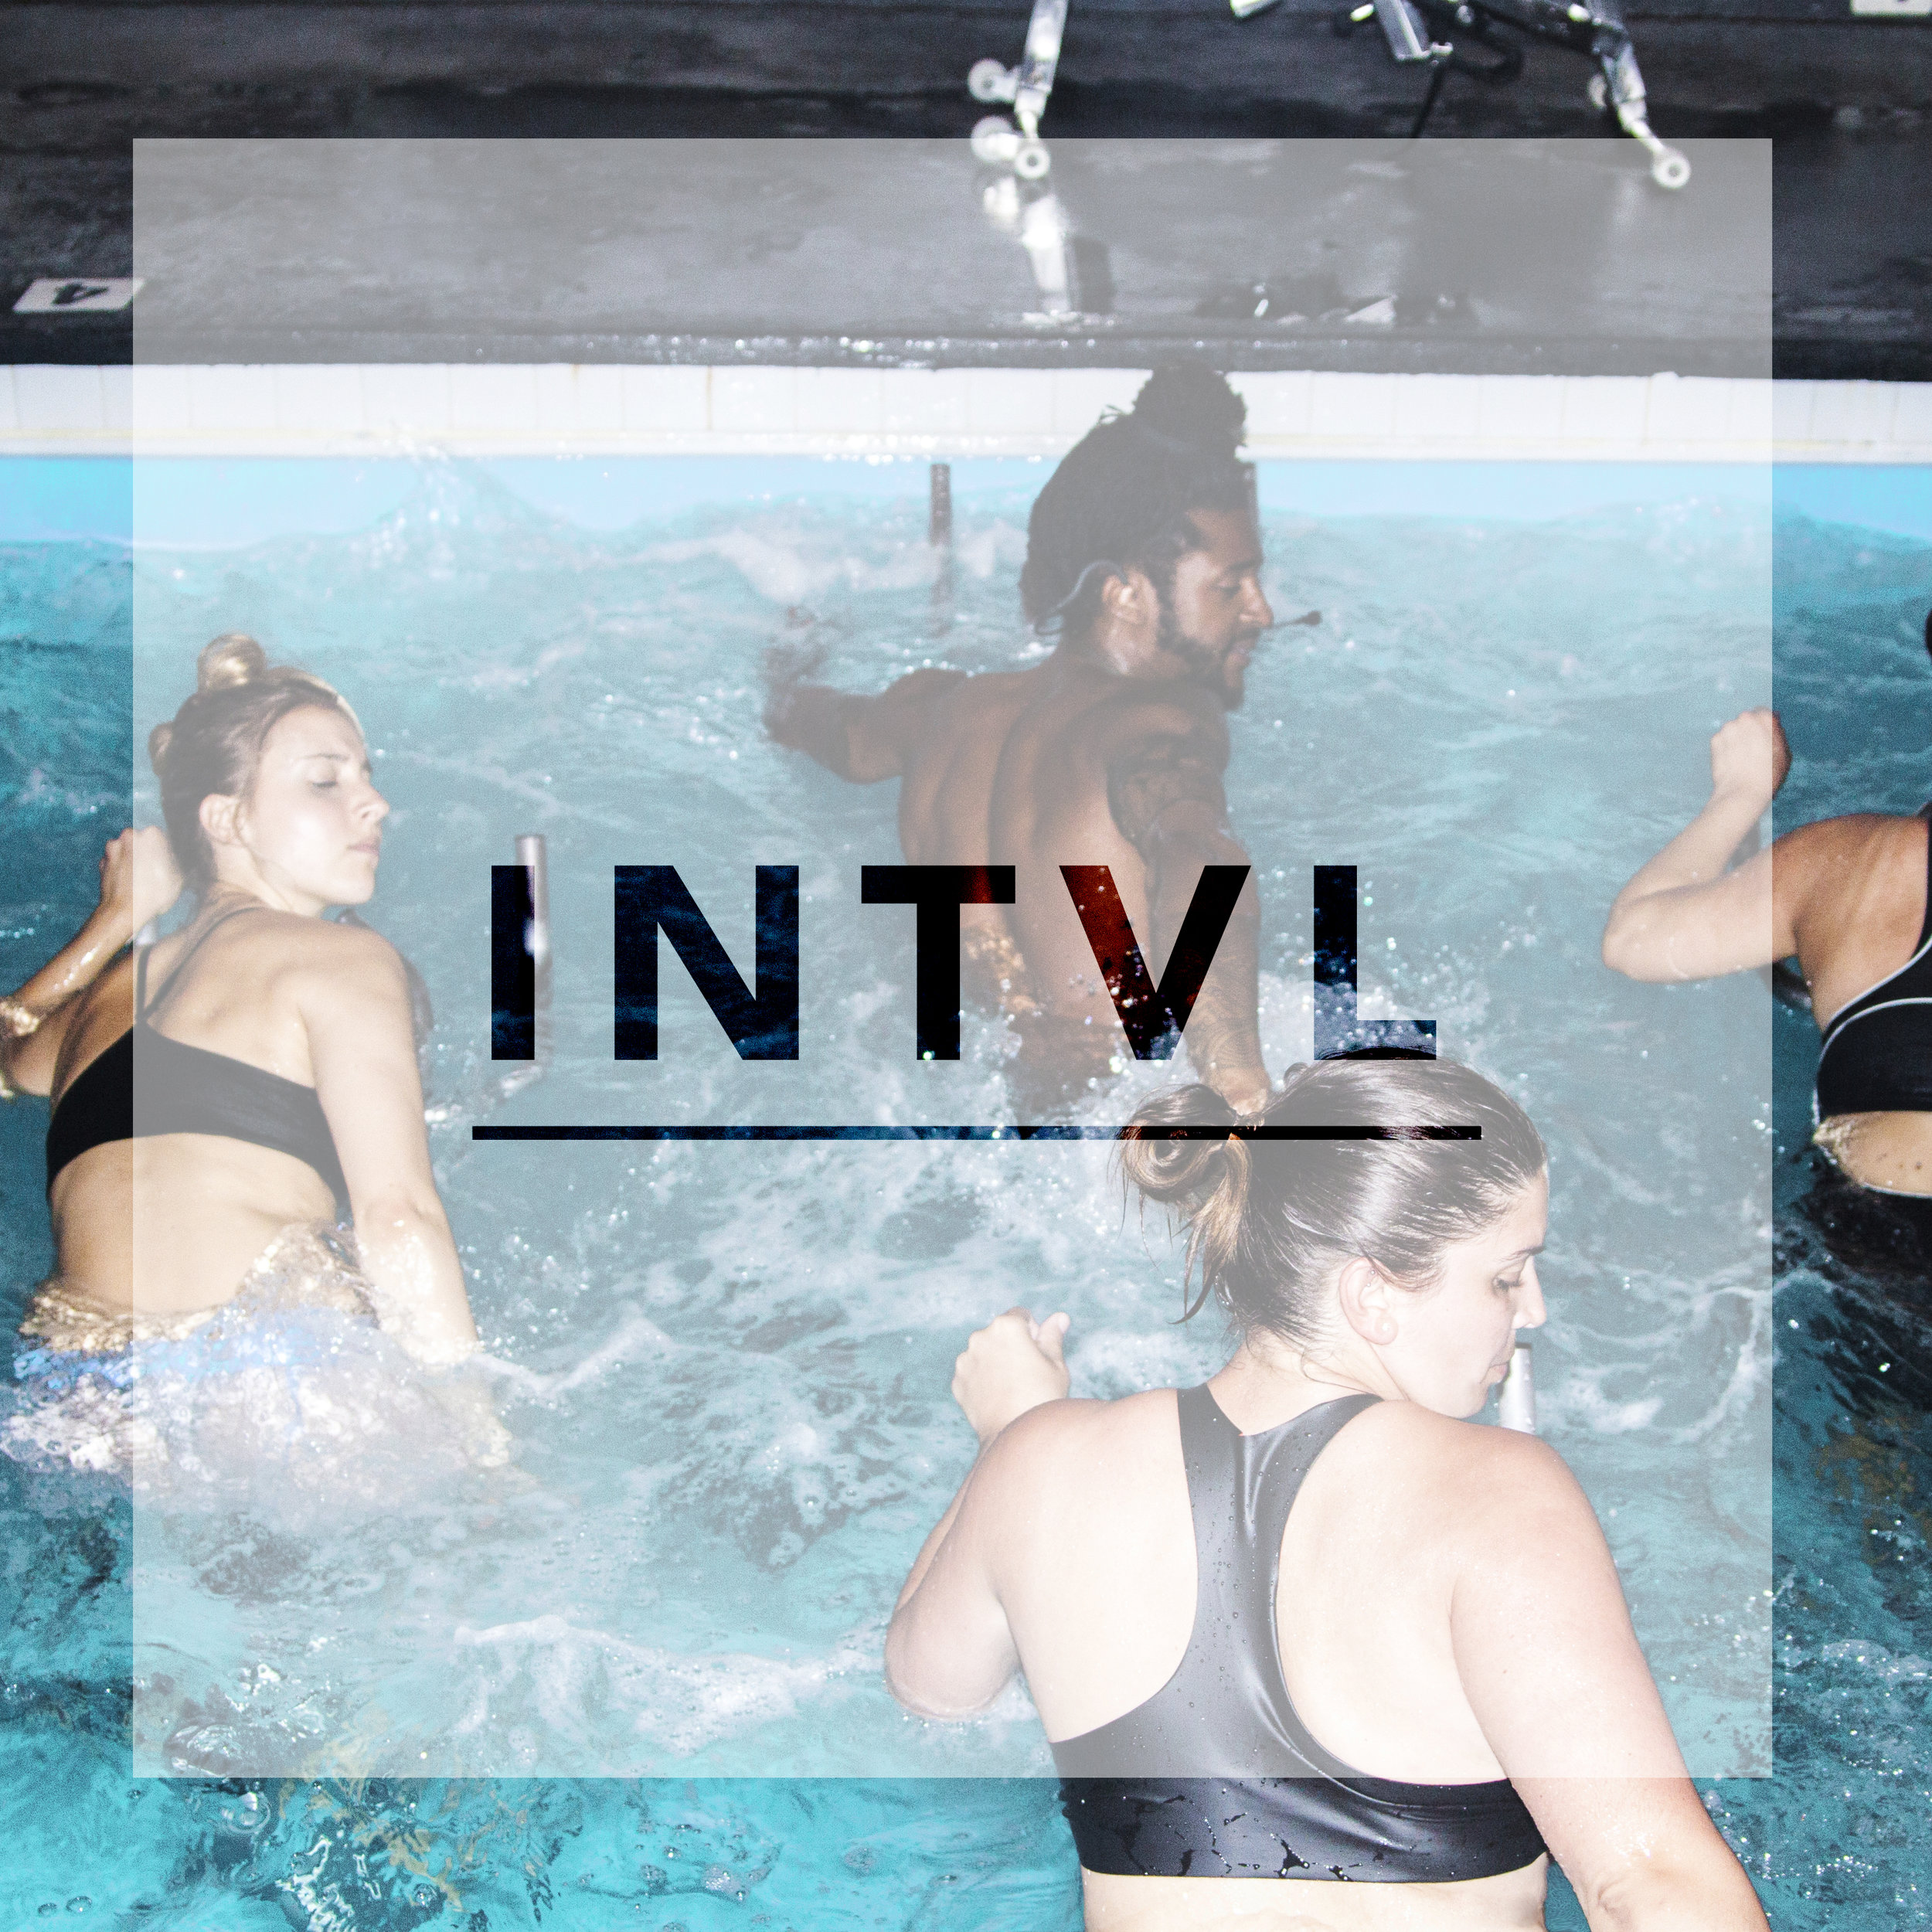 CLASS DESCription - Fast-pace dynamic full-body workout that alternates intense burst of speed with active recovery including sustained arm exercises to keep the heart rate elevated.| RECOMMENDED FORAthlete. Cross-training. Weight-loss. Cellulite reduction.